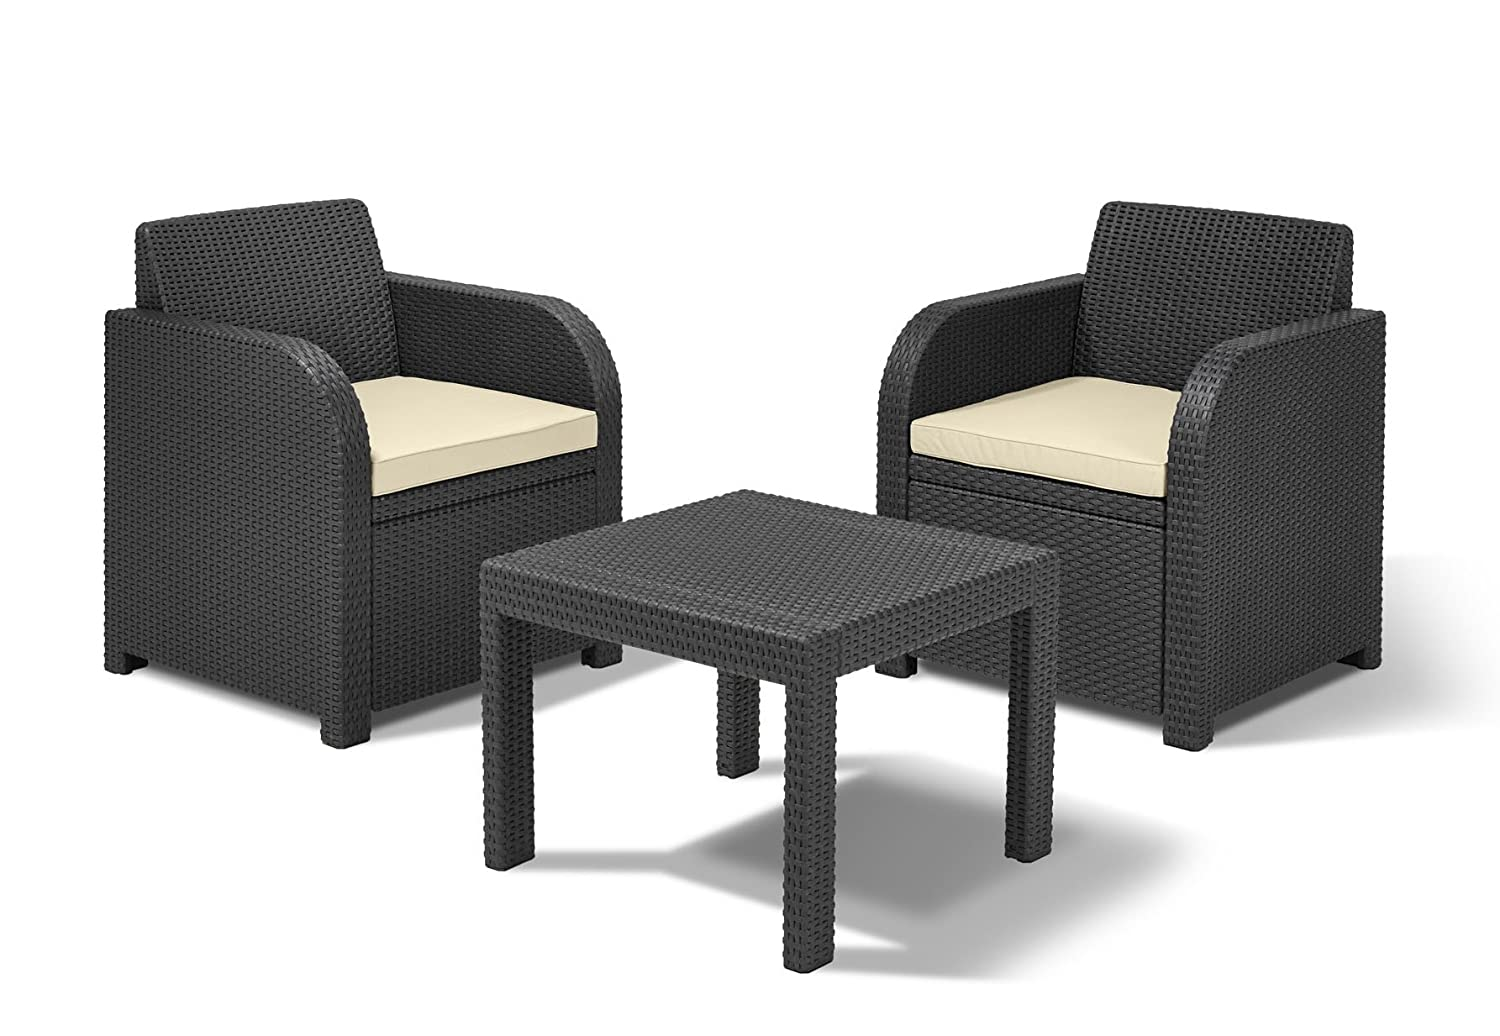 keter allibert atlanta 2 seater balcony bistro set with cushions grey amazoncouk garden u0026 outdoors